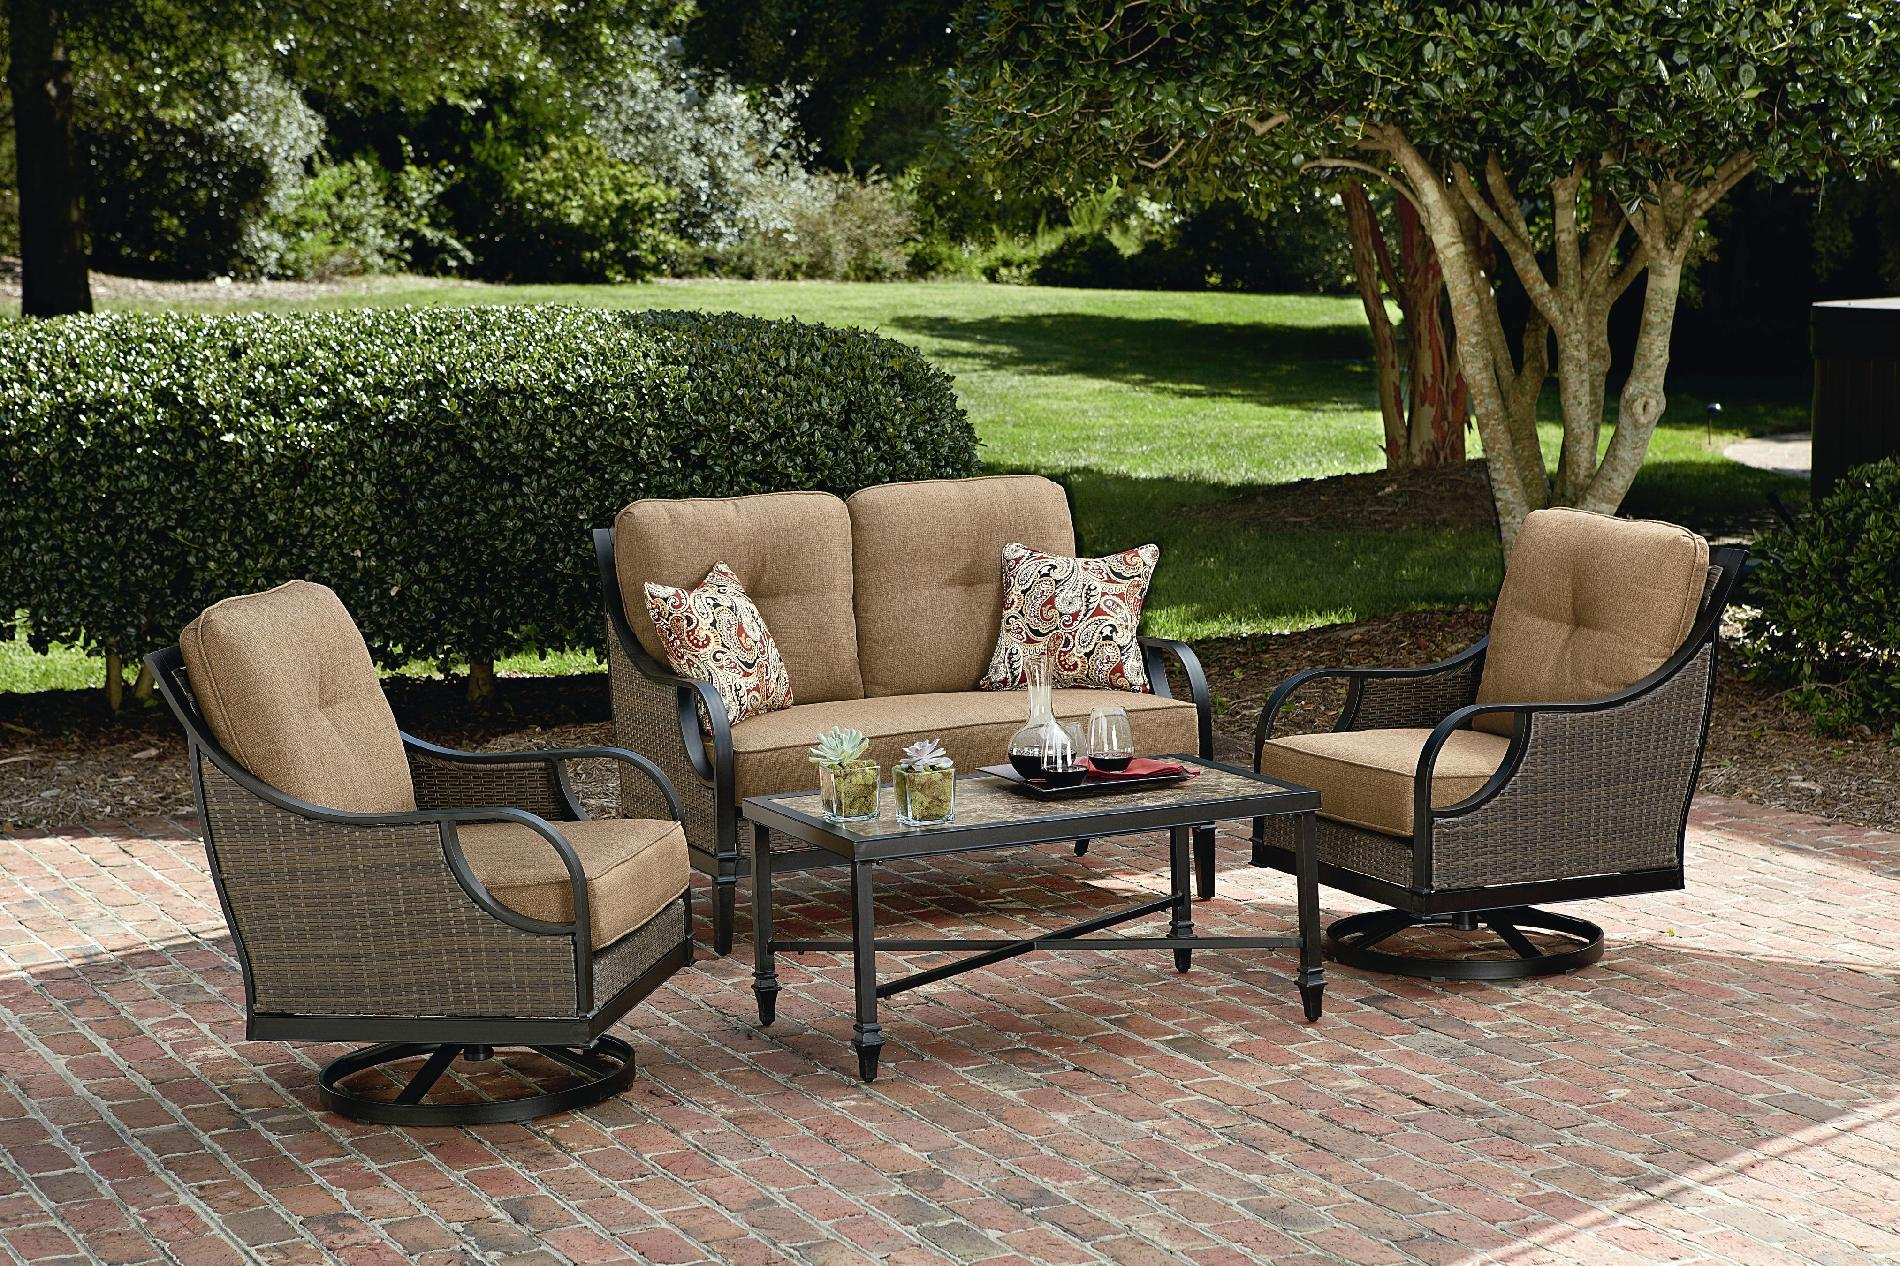 Elegant Sears Patio Furniture Clearance